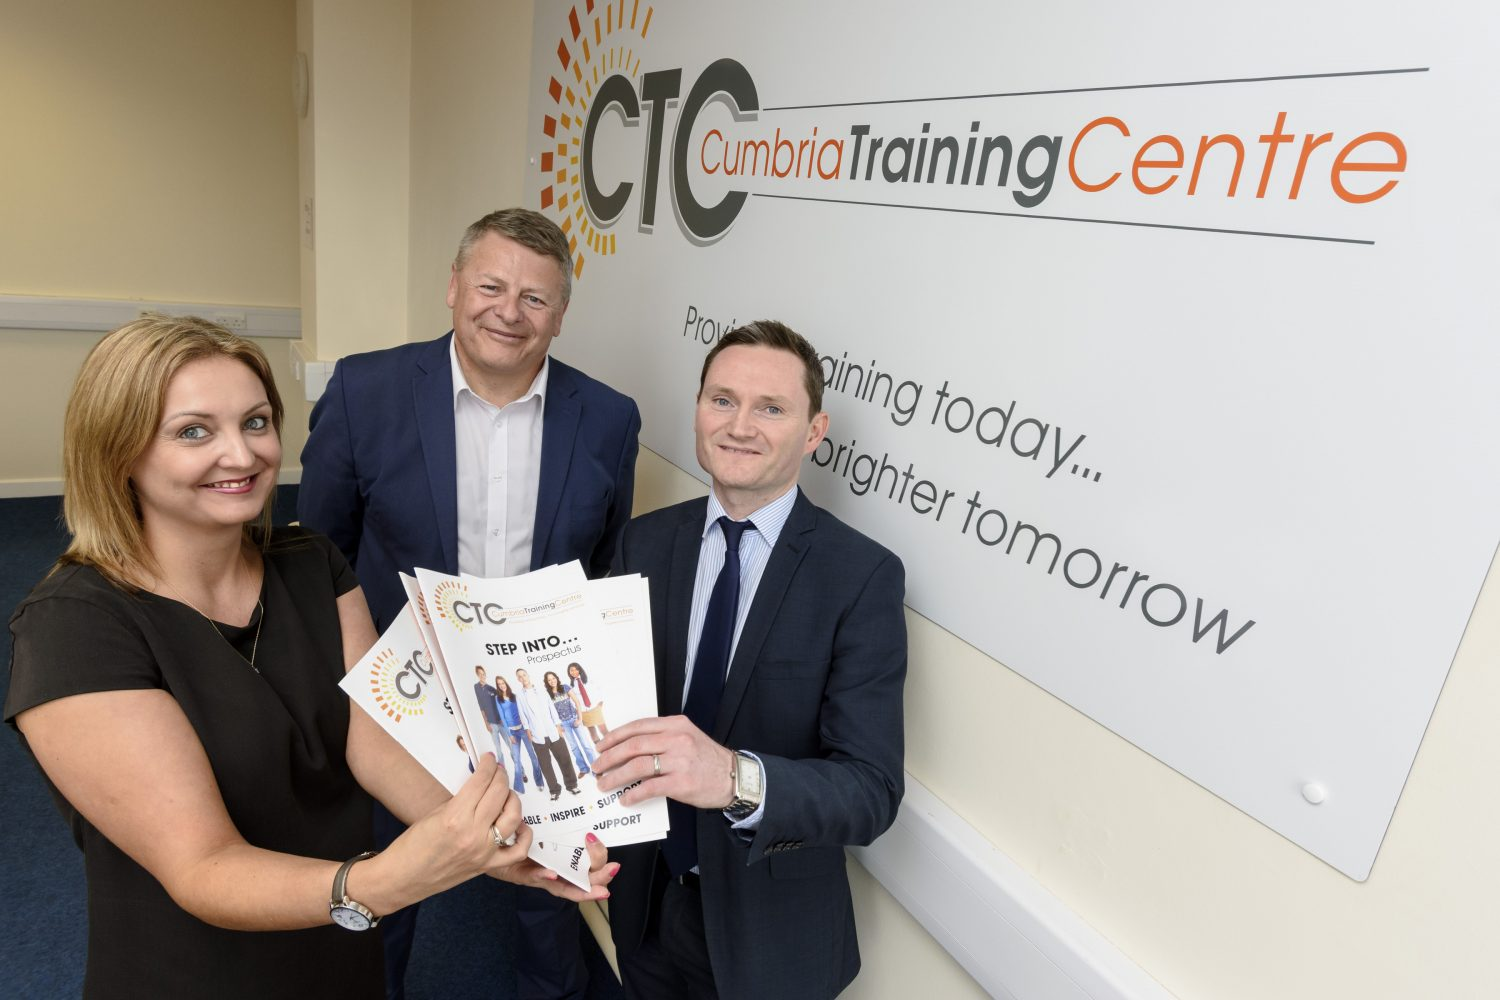 Three people in an office standing near a wall with a poster of CTC Cumbria Training Centre poster. There is one woman to the far let with light brown hair wearing a black tee shirt holding some brochures and another man to the far right wearing a blue suit and blue tie also holding the brochures.